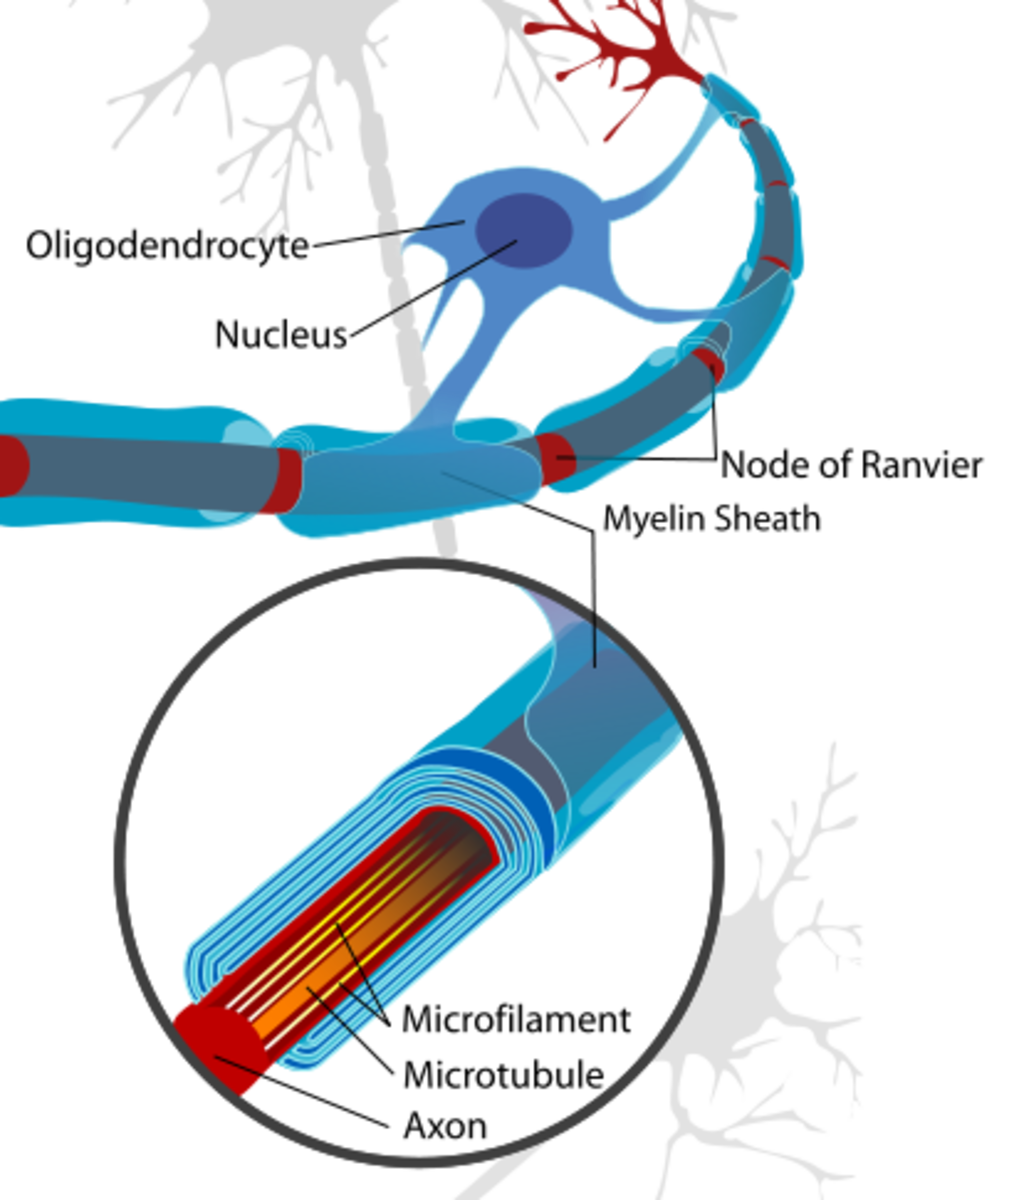 Structure of a neuron or nerve cell